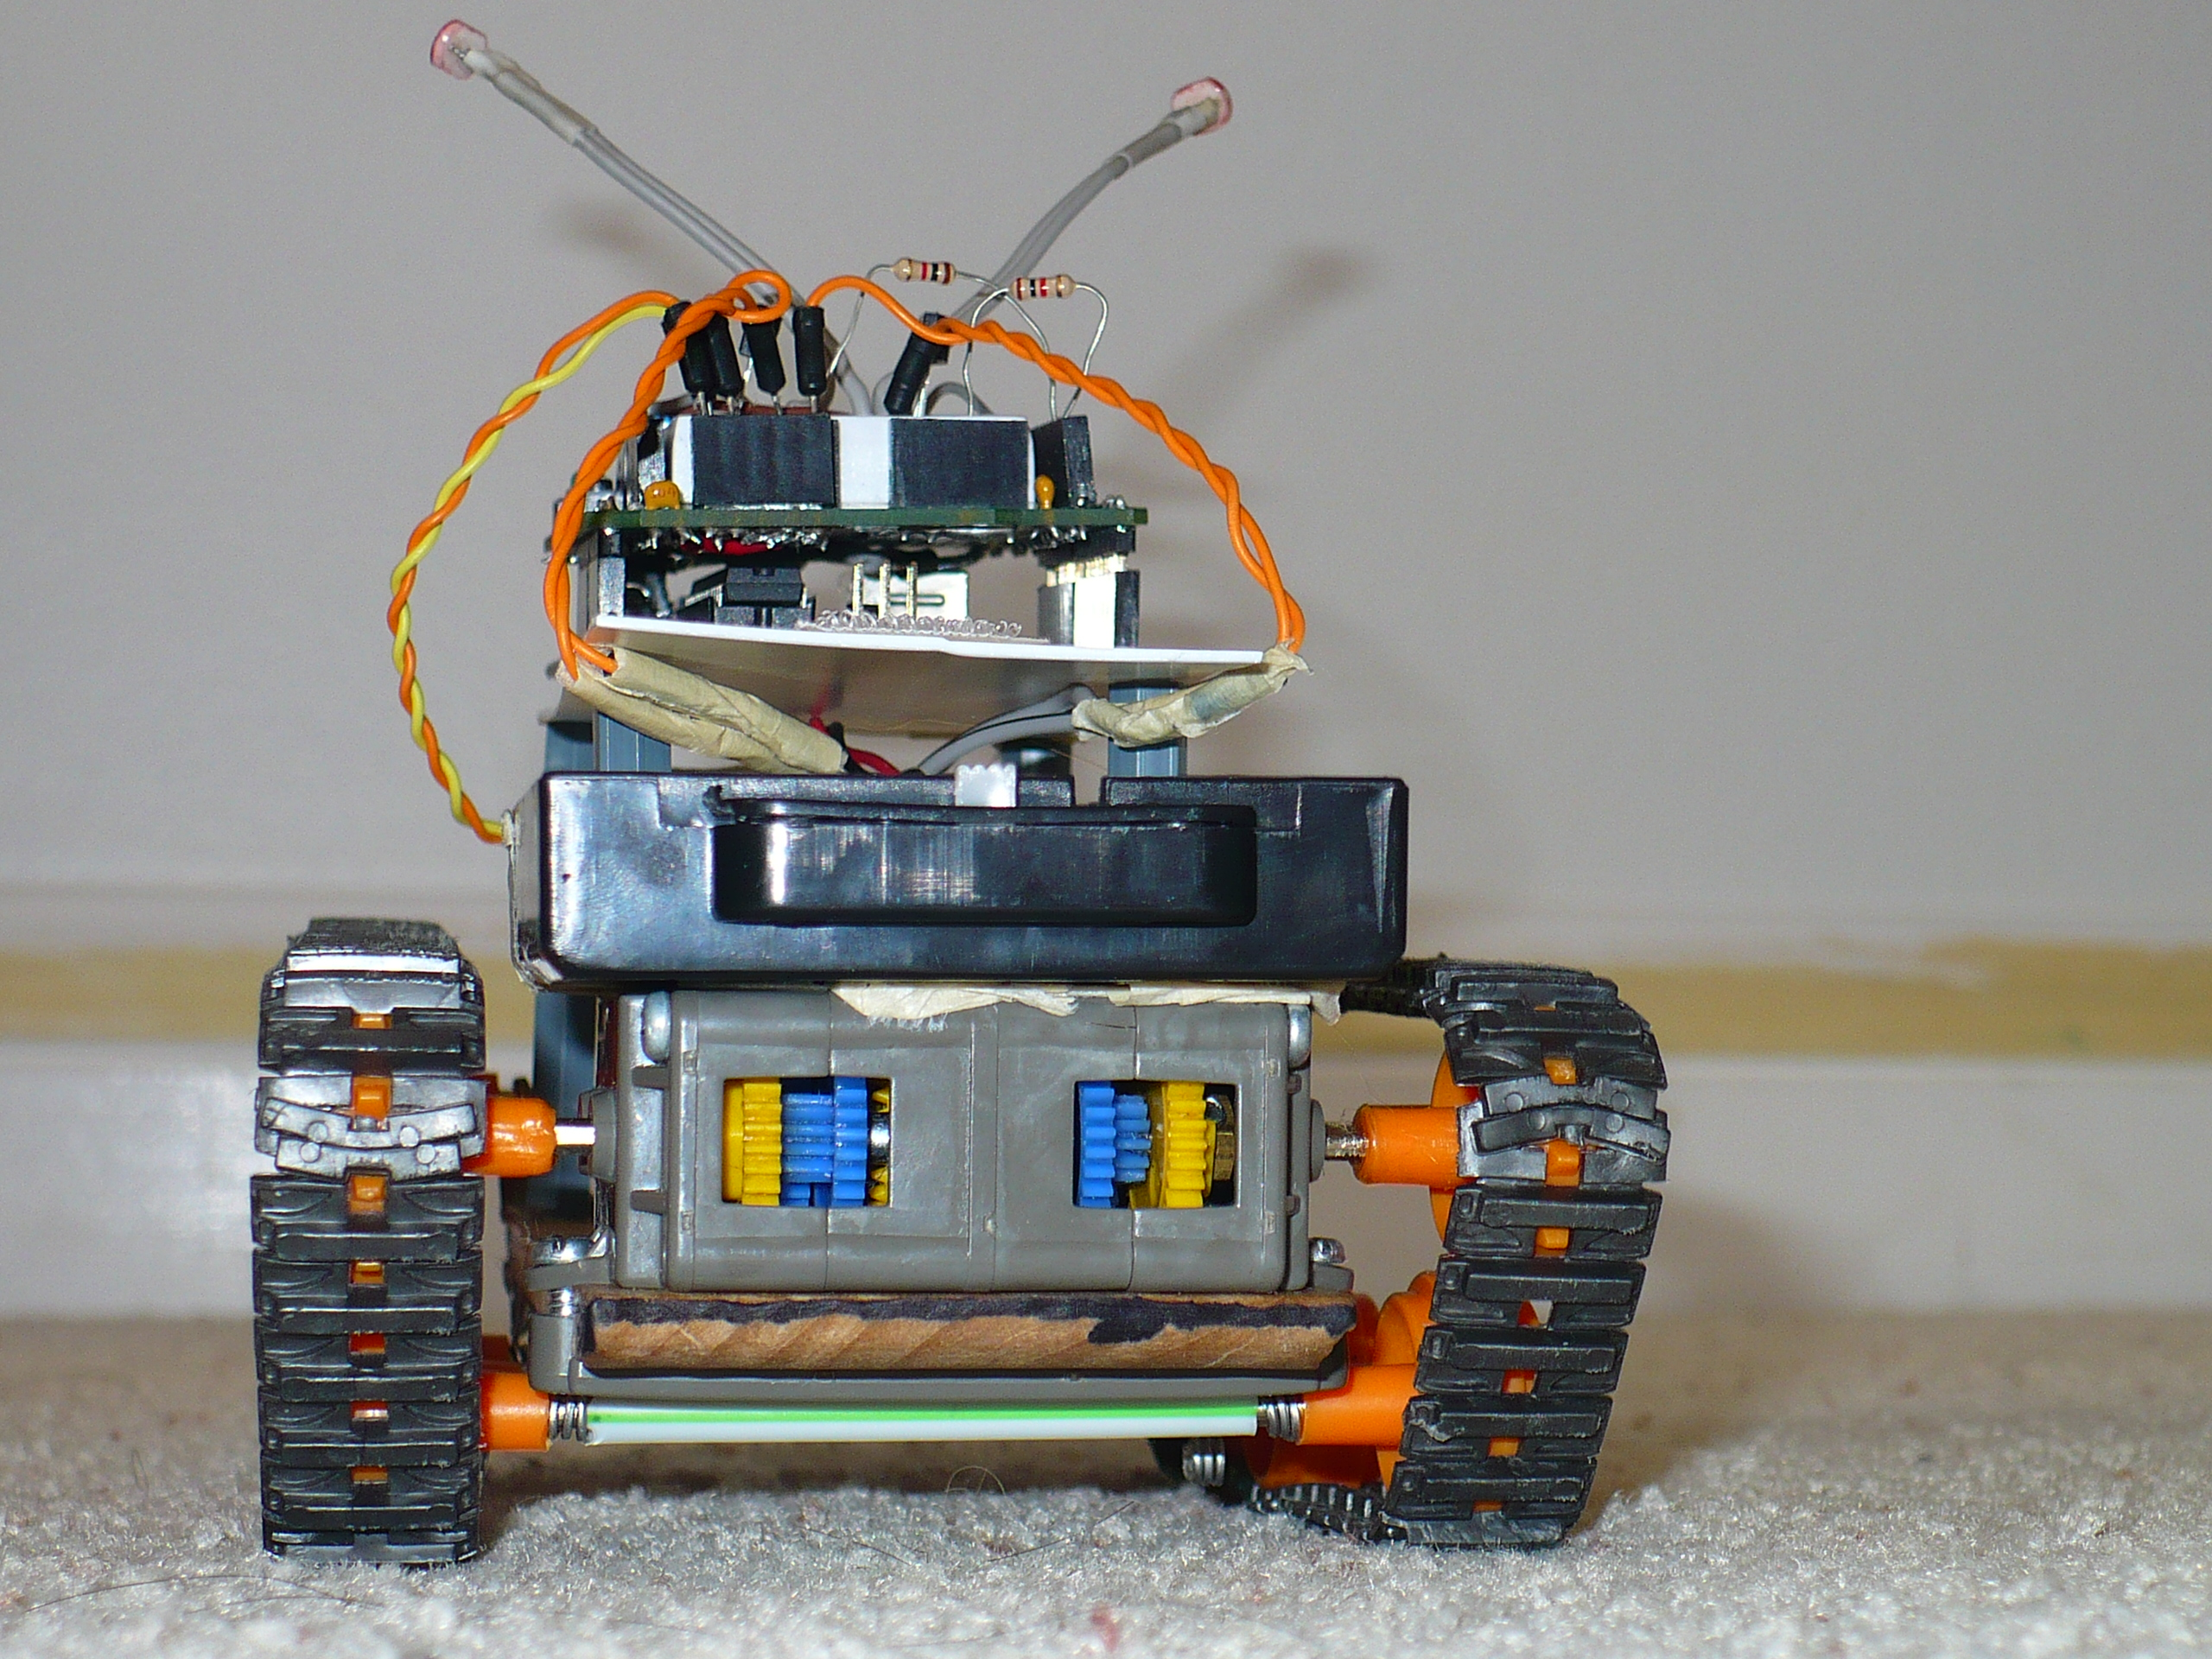 Picture of (w/ Video) Basic Arduino Robot, Light Seeker!